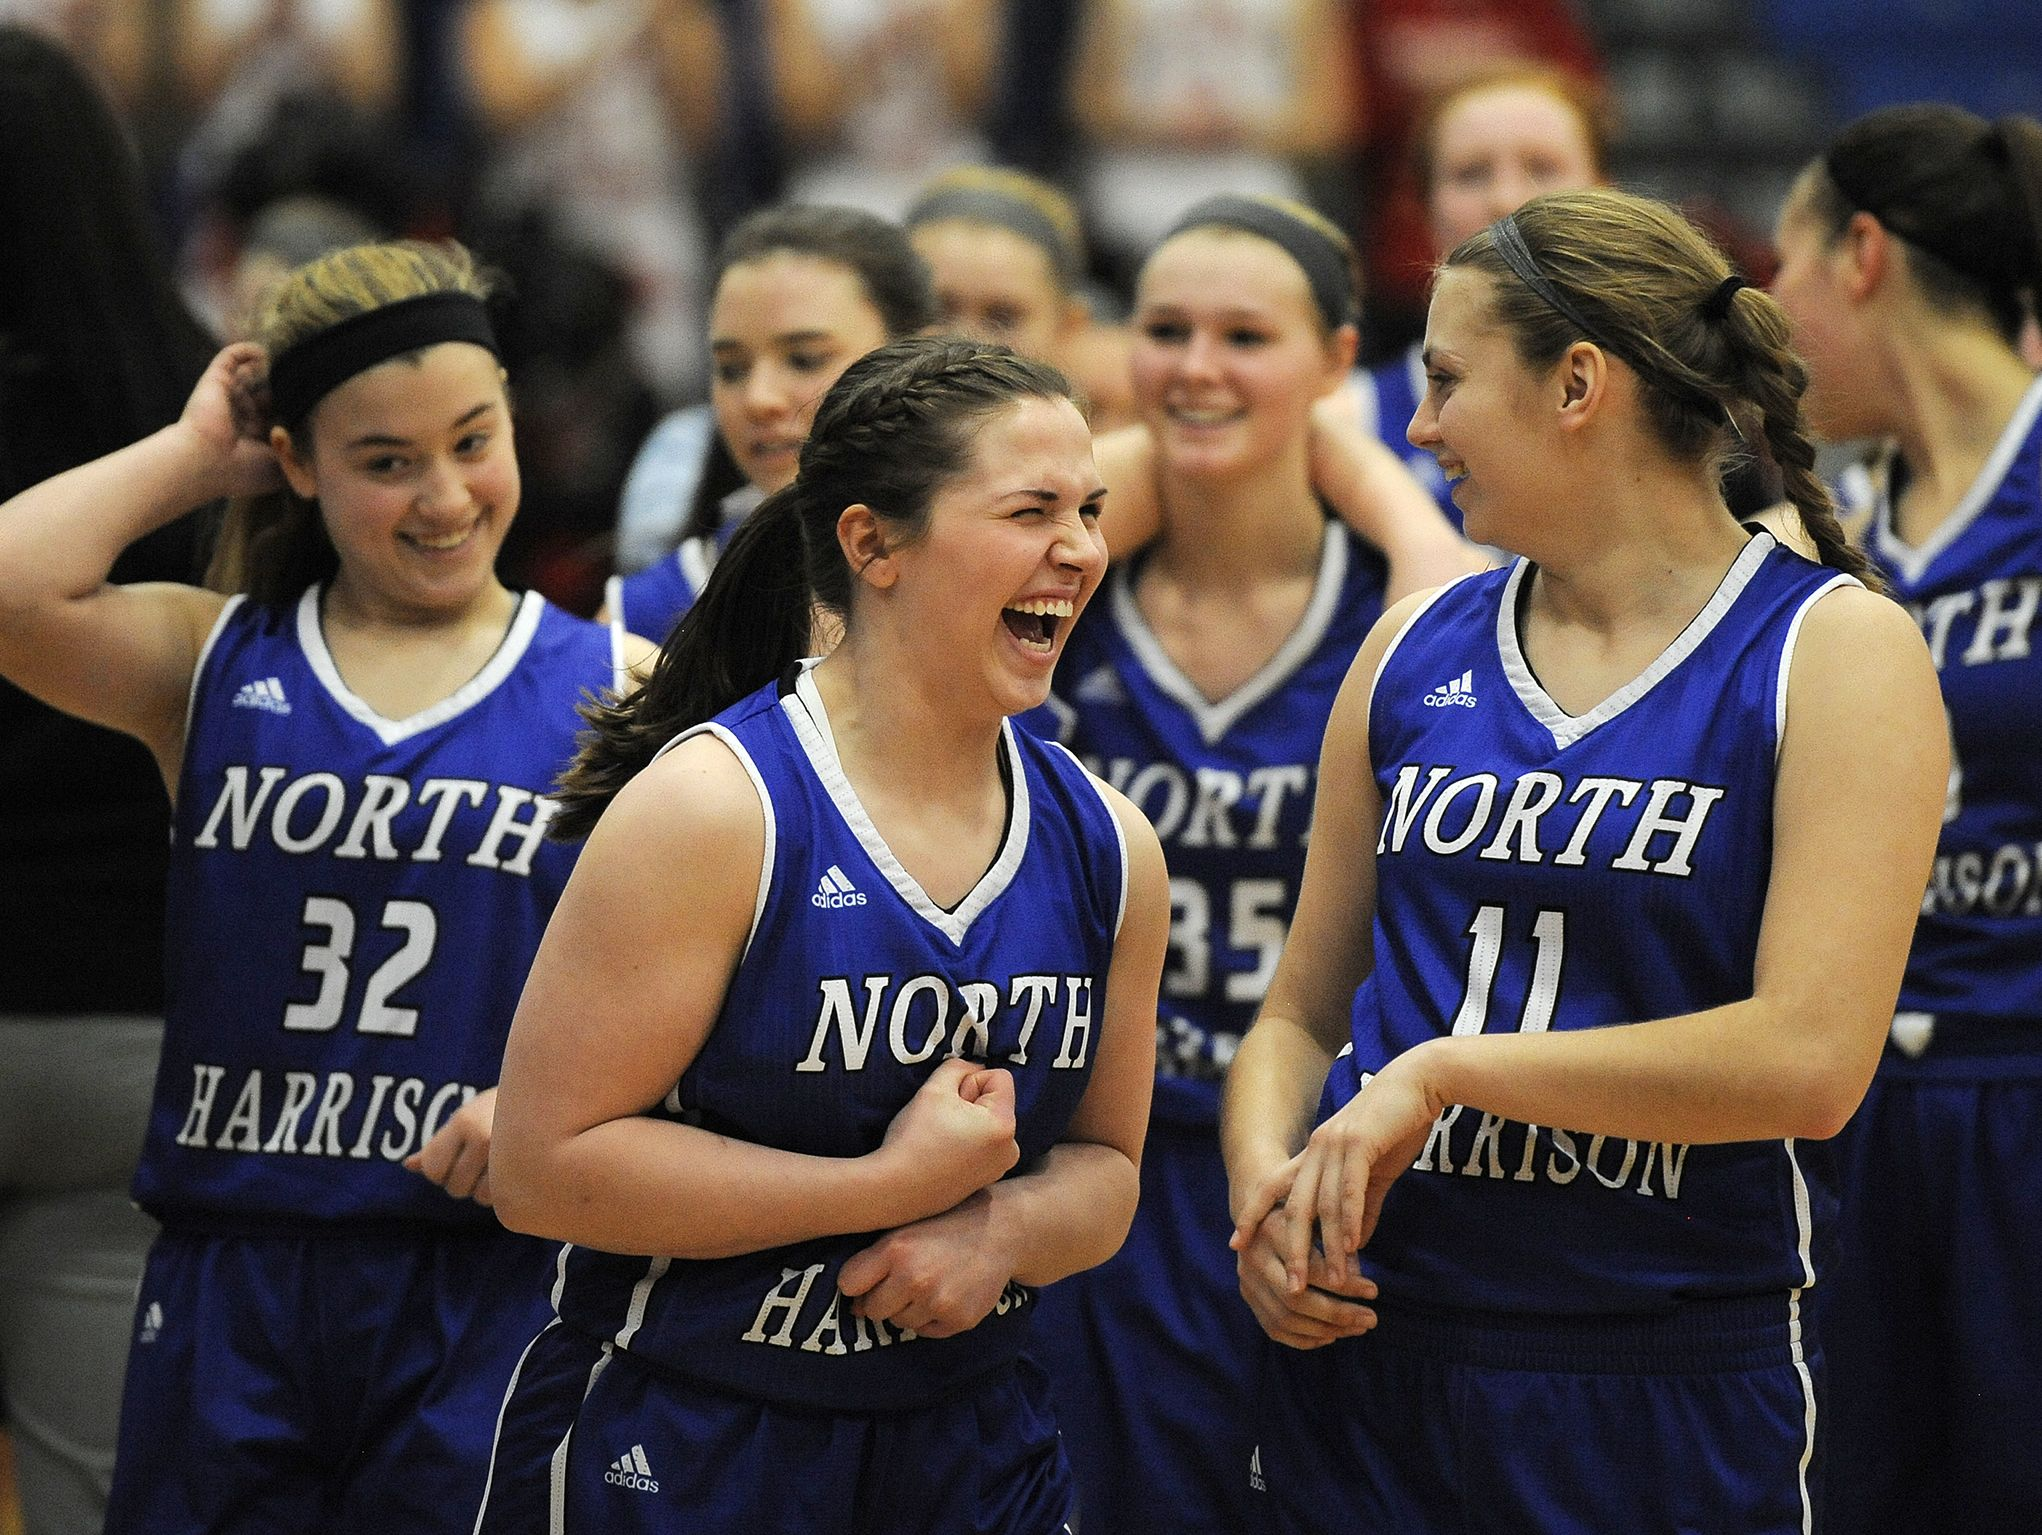 North Harrison's Savana Rhodes (center) celebrates the Lady Cat's 58-42 win against Rushville on Saturday during the Regional #8 semi-final game #2 at Charlestown High School. (Photo by David Lee Hartlage, Special to The Courier-Journal) Feb.11, 2017